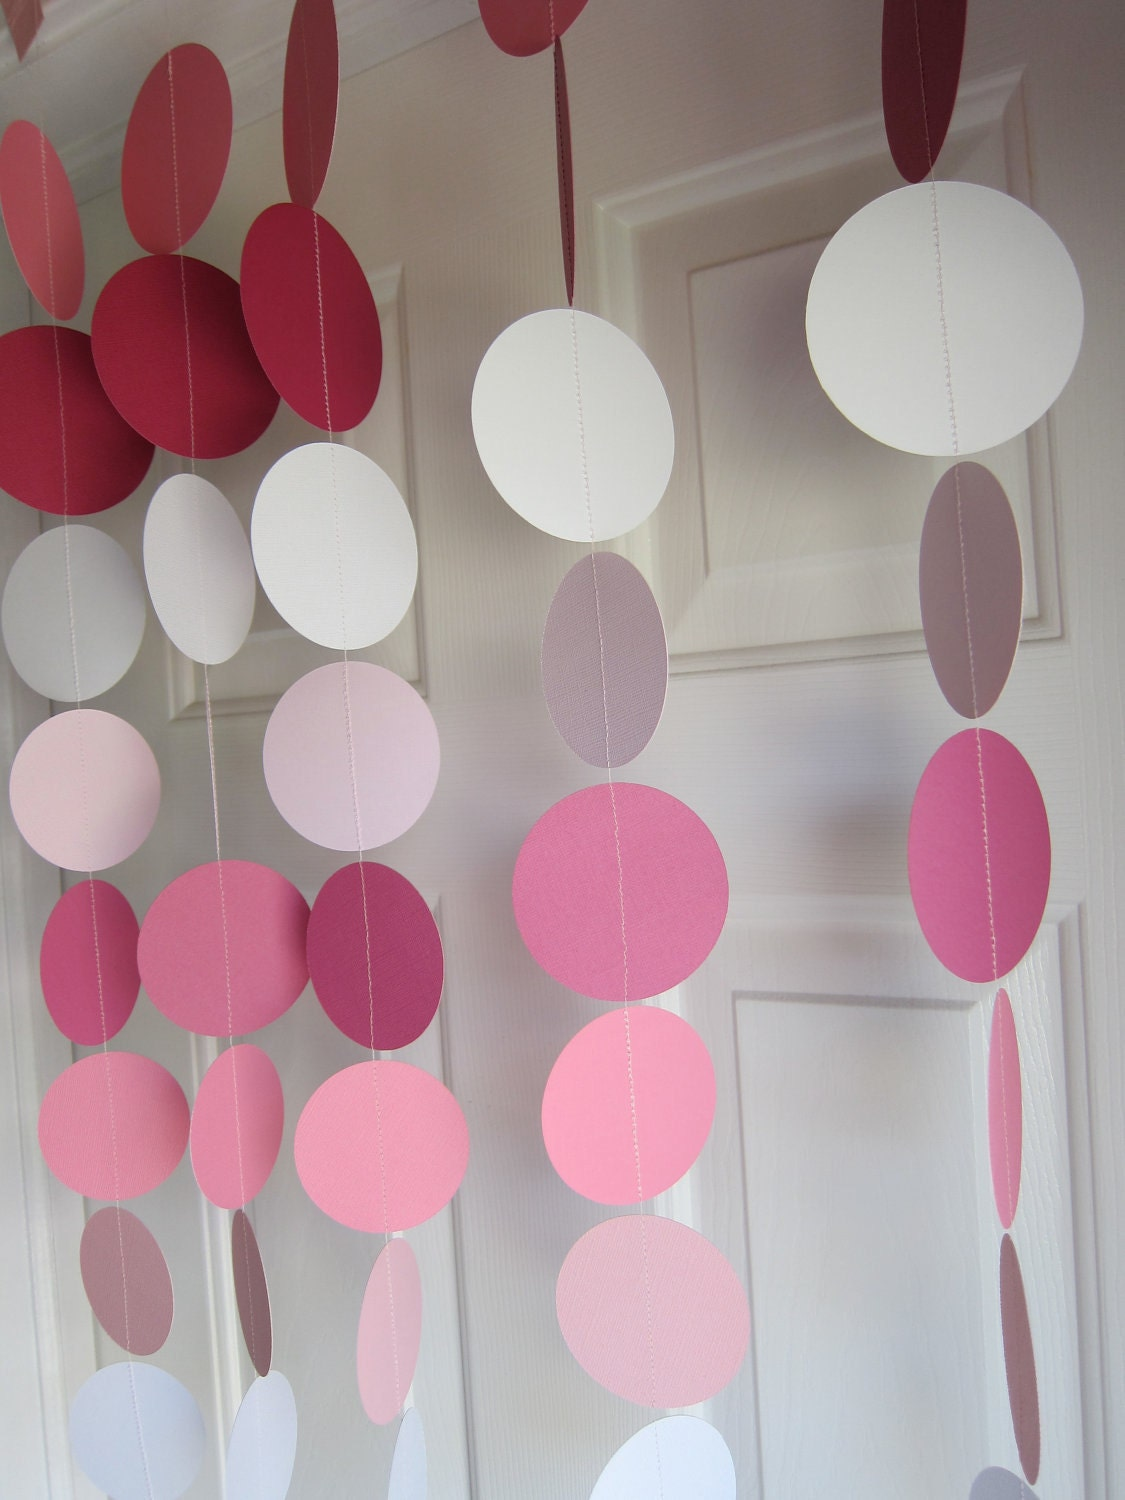 Paper garland decorations birthday party by suzyisanartist for Room decor ideas with paper